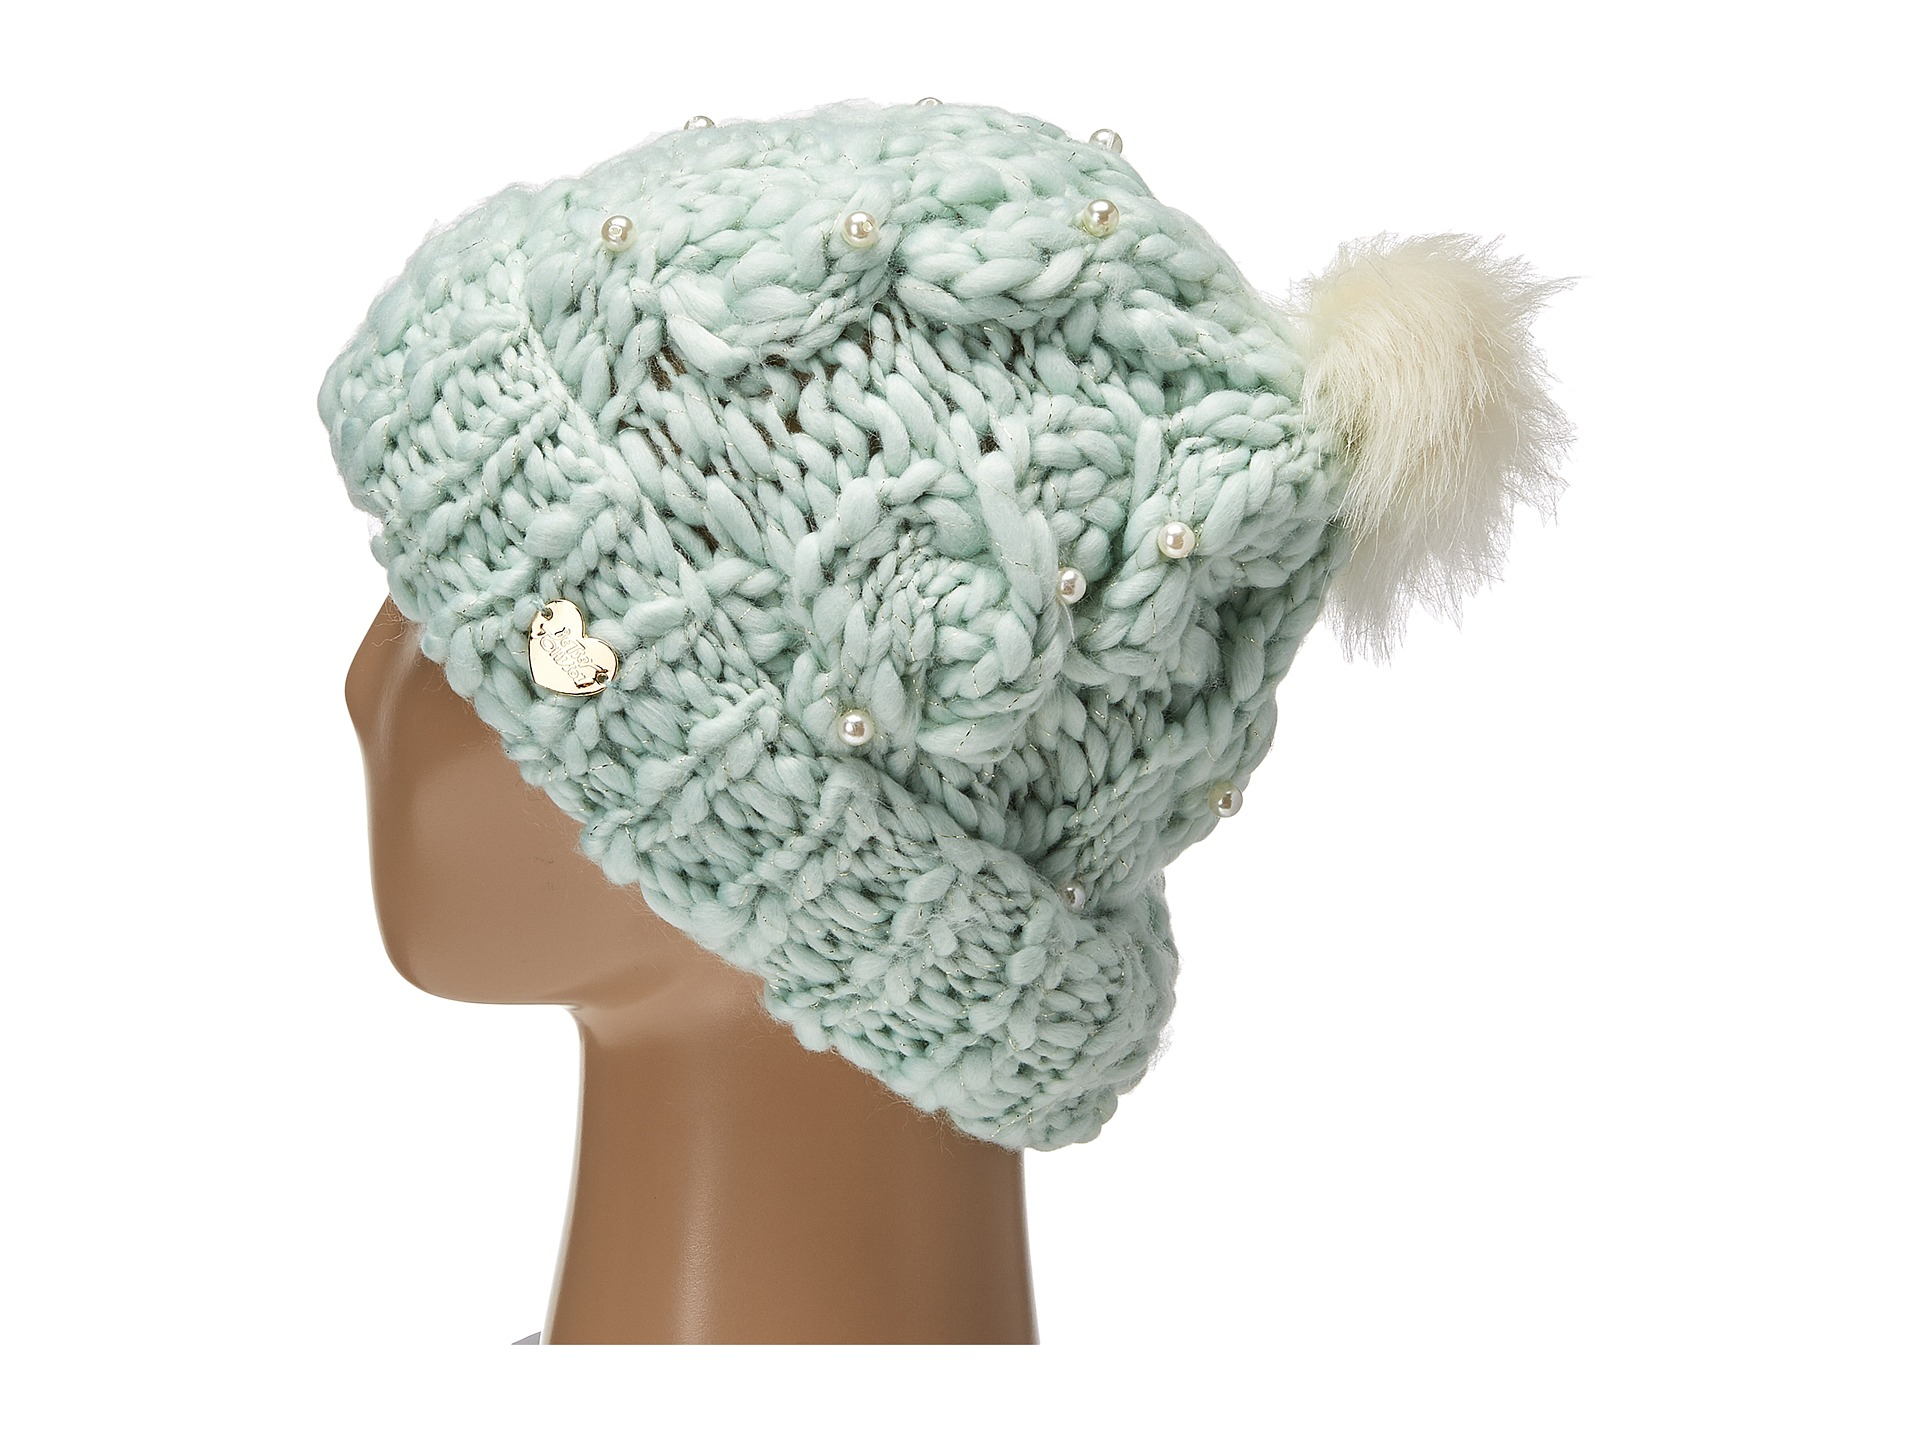 770f34bb38bf0 Lyst - Betsey Johnson Pearly Girl Cuff Hat in Blue